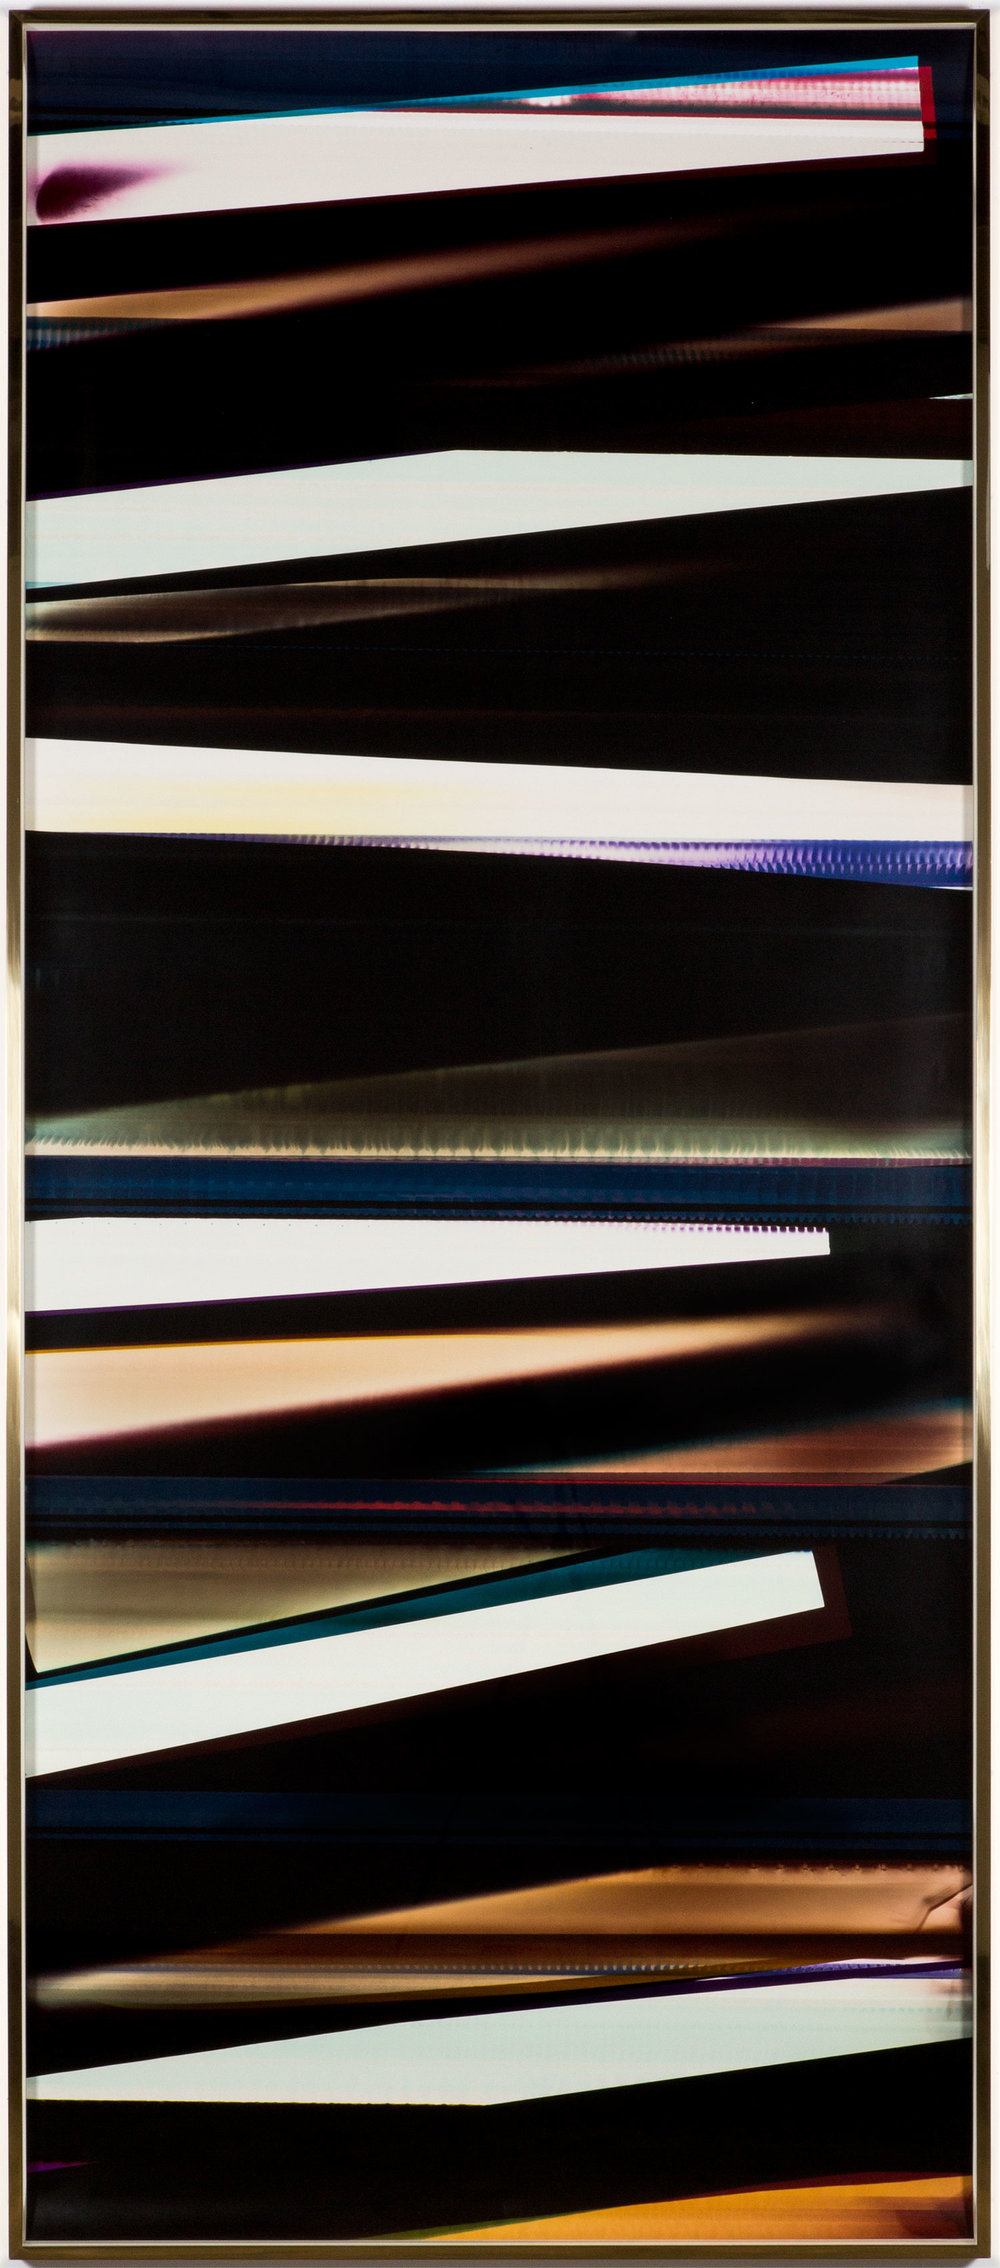 RA4 Contact Print / Processor Stall [Black Curl (9:6/MYC/Six Magnet: Los Angeles, California, July 15, 2014, Fuji Color Crystal Archive Super Type C, Em. No. 107-116, 75414), Kreonite KM IV 5225 RA4 Color Processor, Ser. No. 00092174]   2016  Color photographic paper  119 3/4 x 51 1/2 inches   RA4 Contact Print Curls, 2014–    Automat, 2016